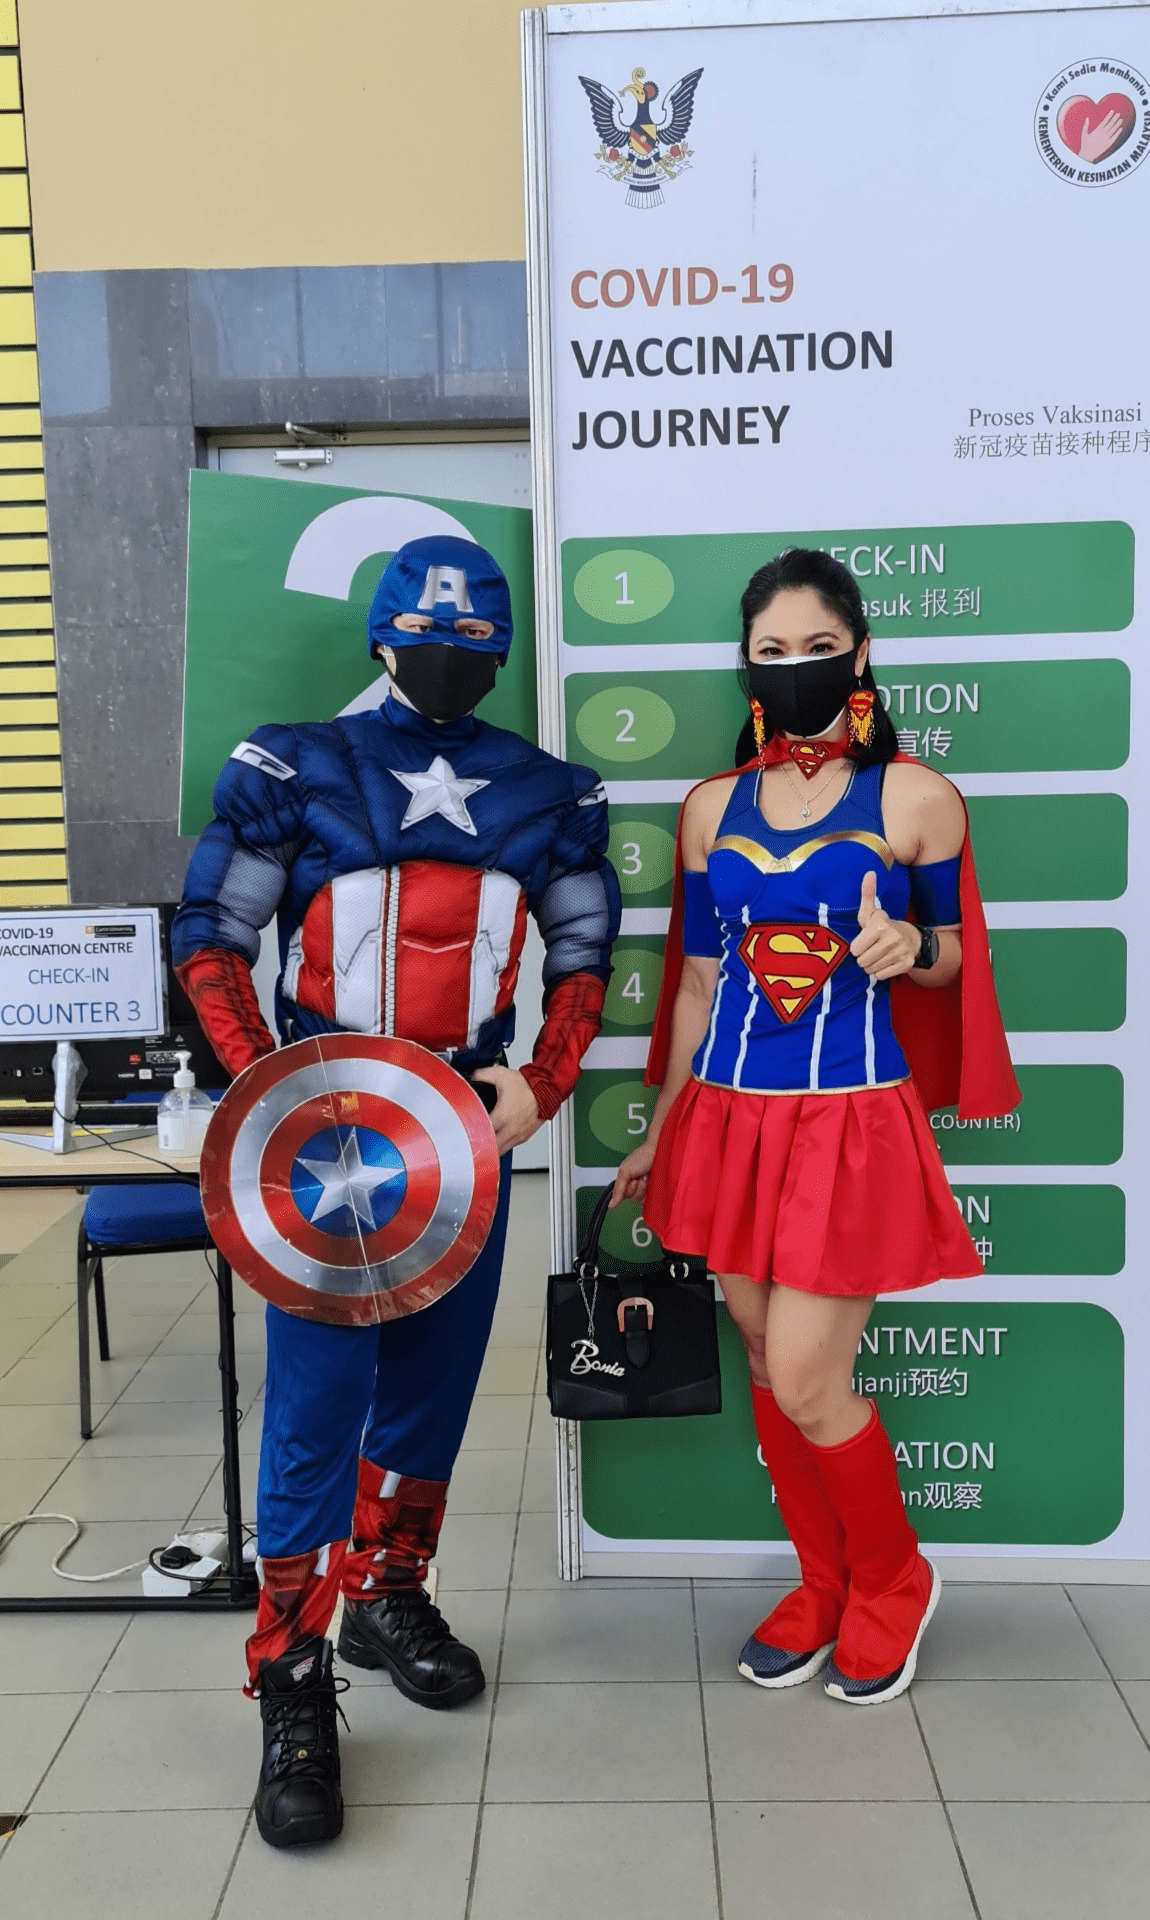 Malaysians wear costumes to vaccination - Captain America